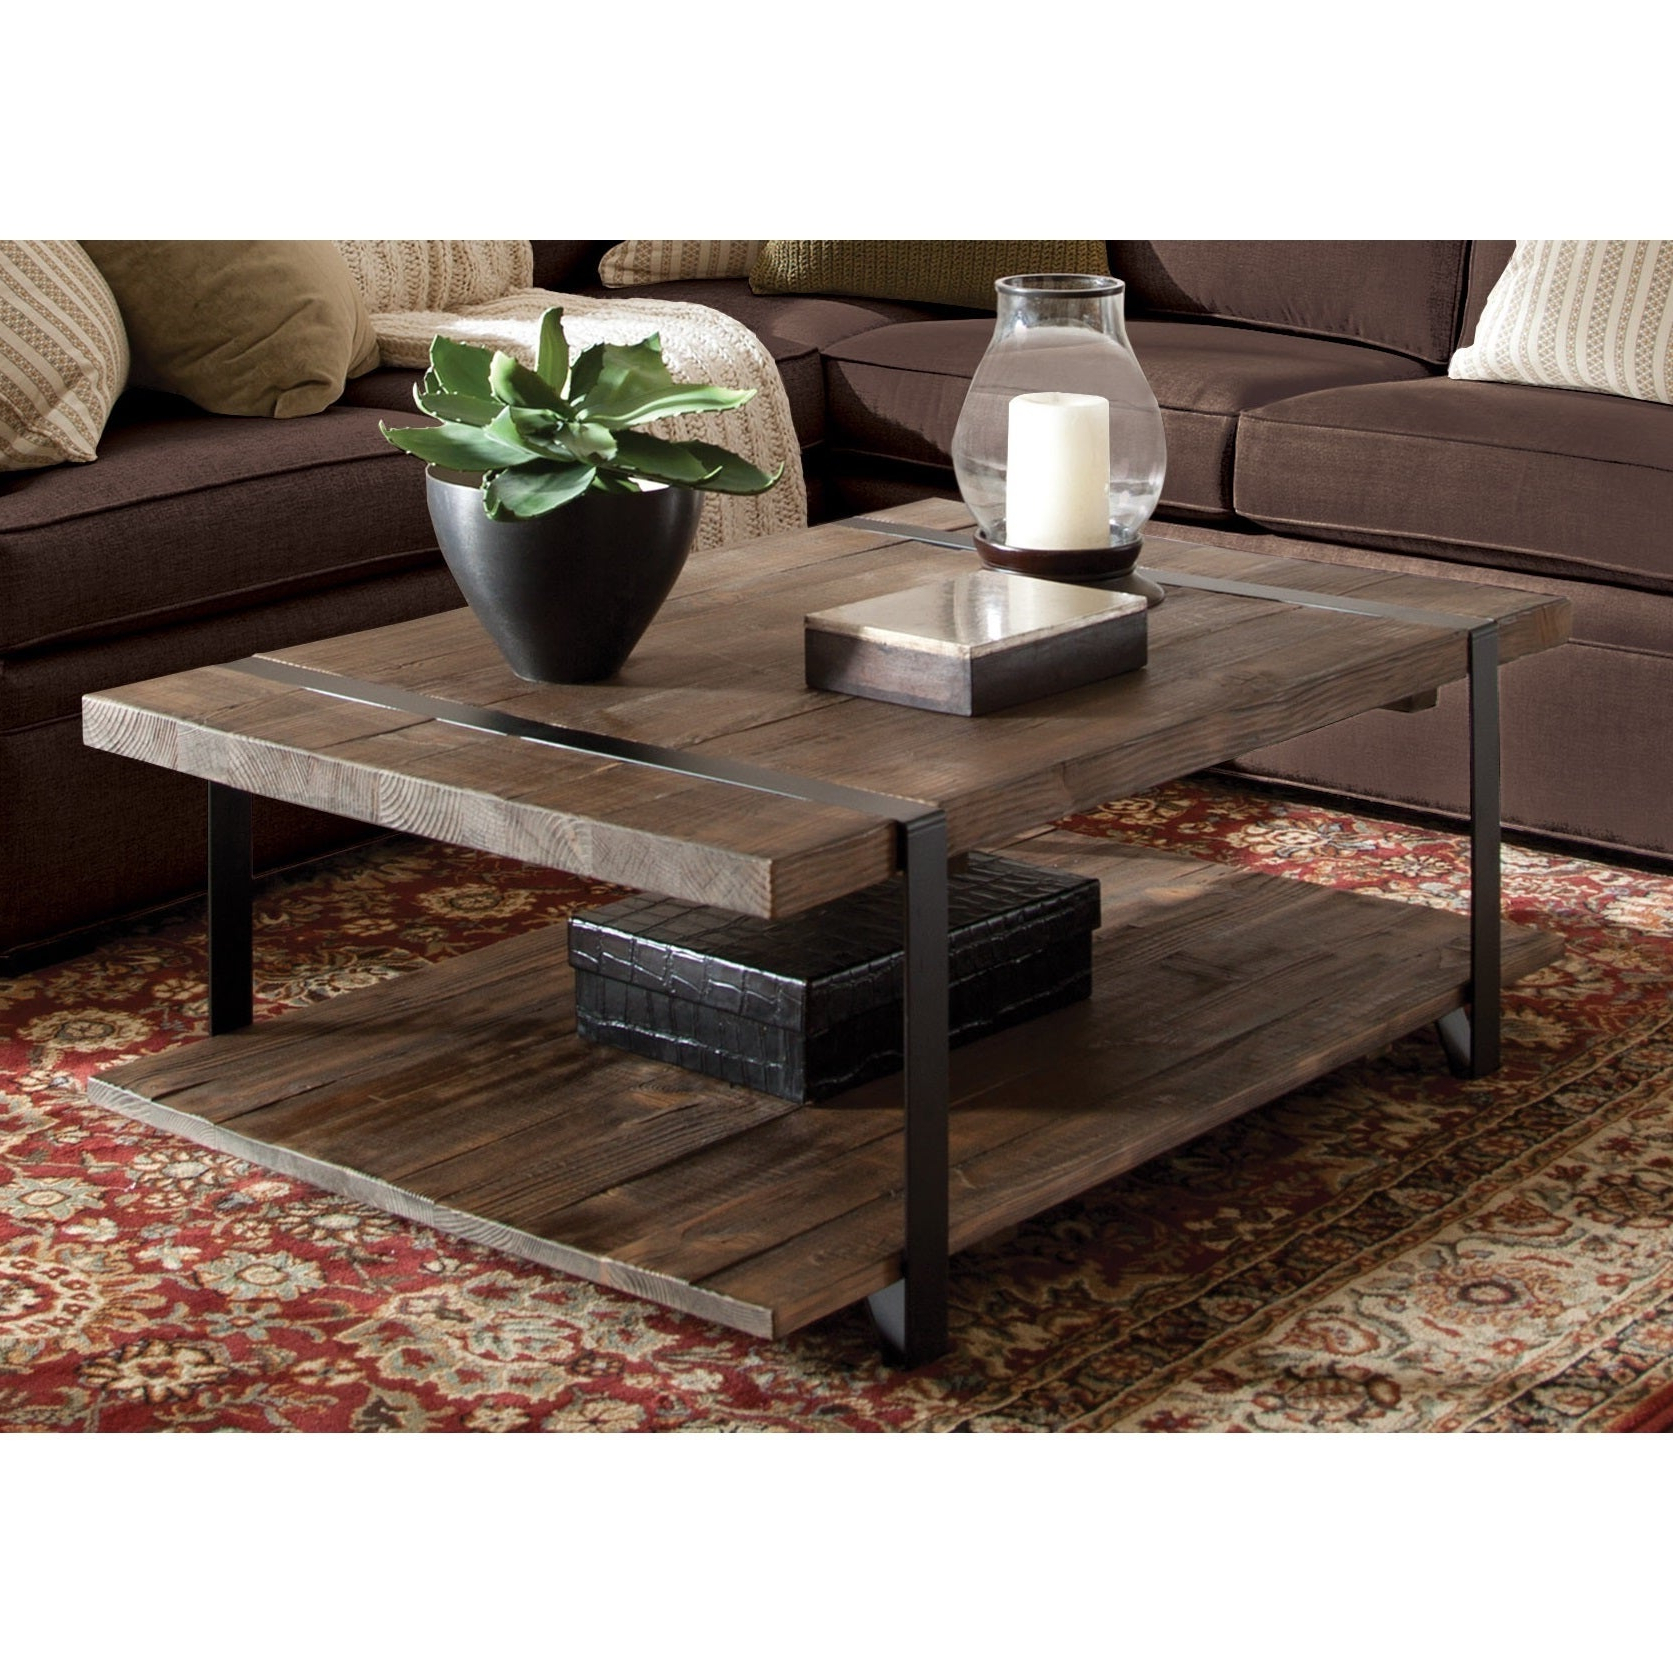 Carbon Loft Kenyon Natural Finished Reclaimed Wood Large Coffee Table Intended For Most Current Carbon Loft Lee Reclaimed Fir Eastwood Tables (View 4 of 20)